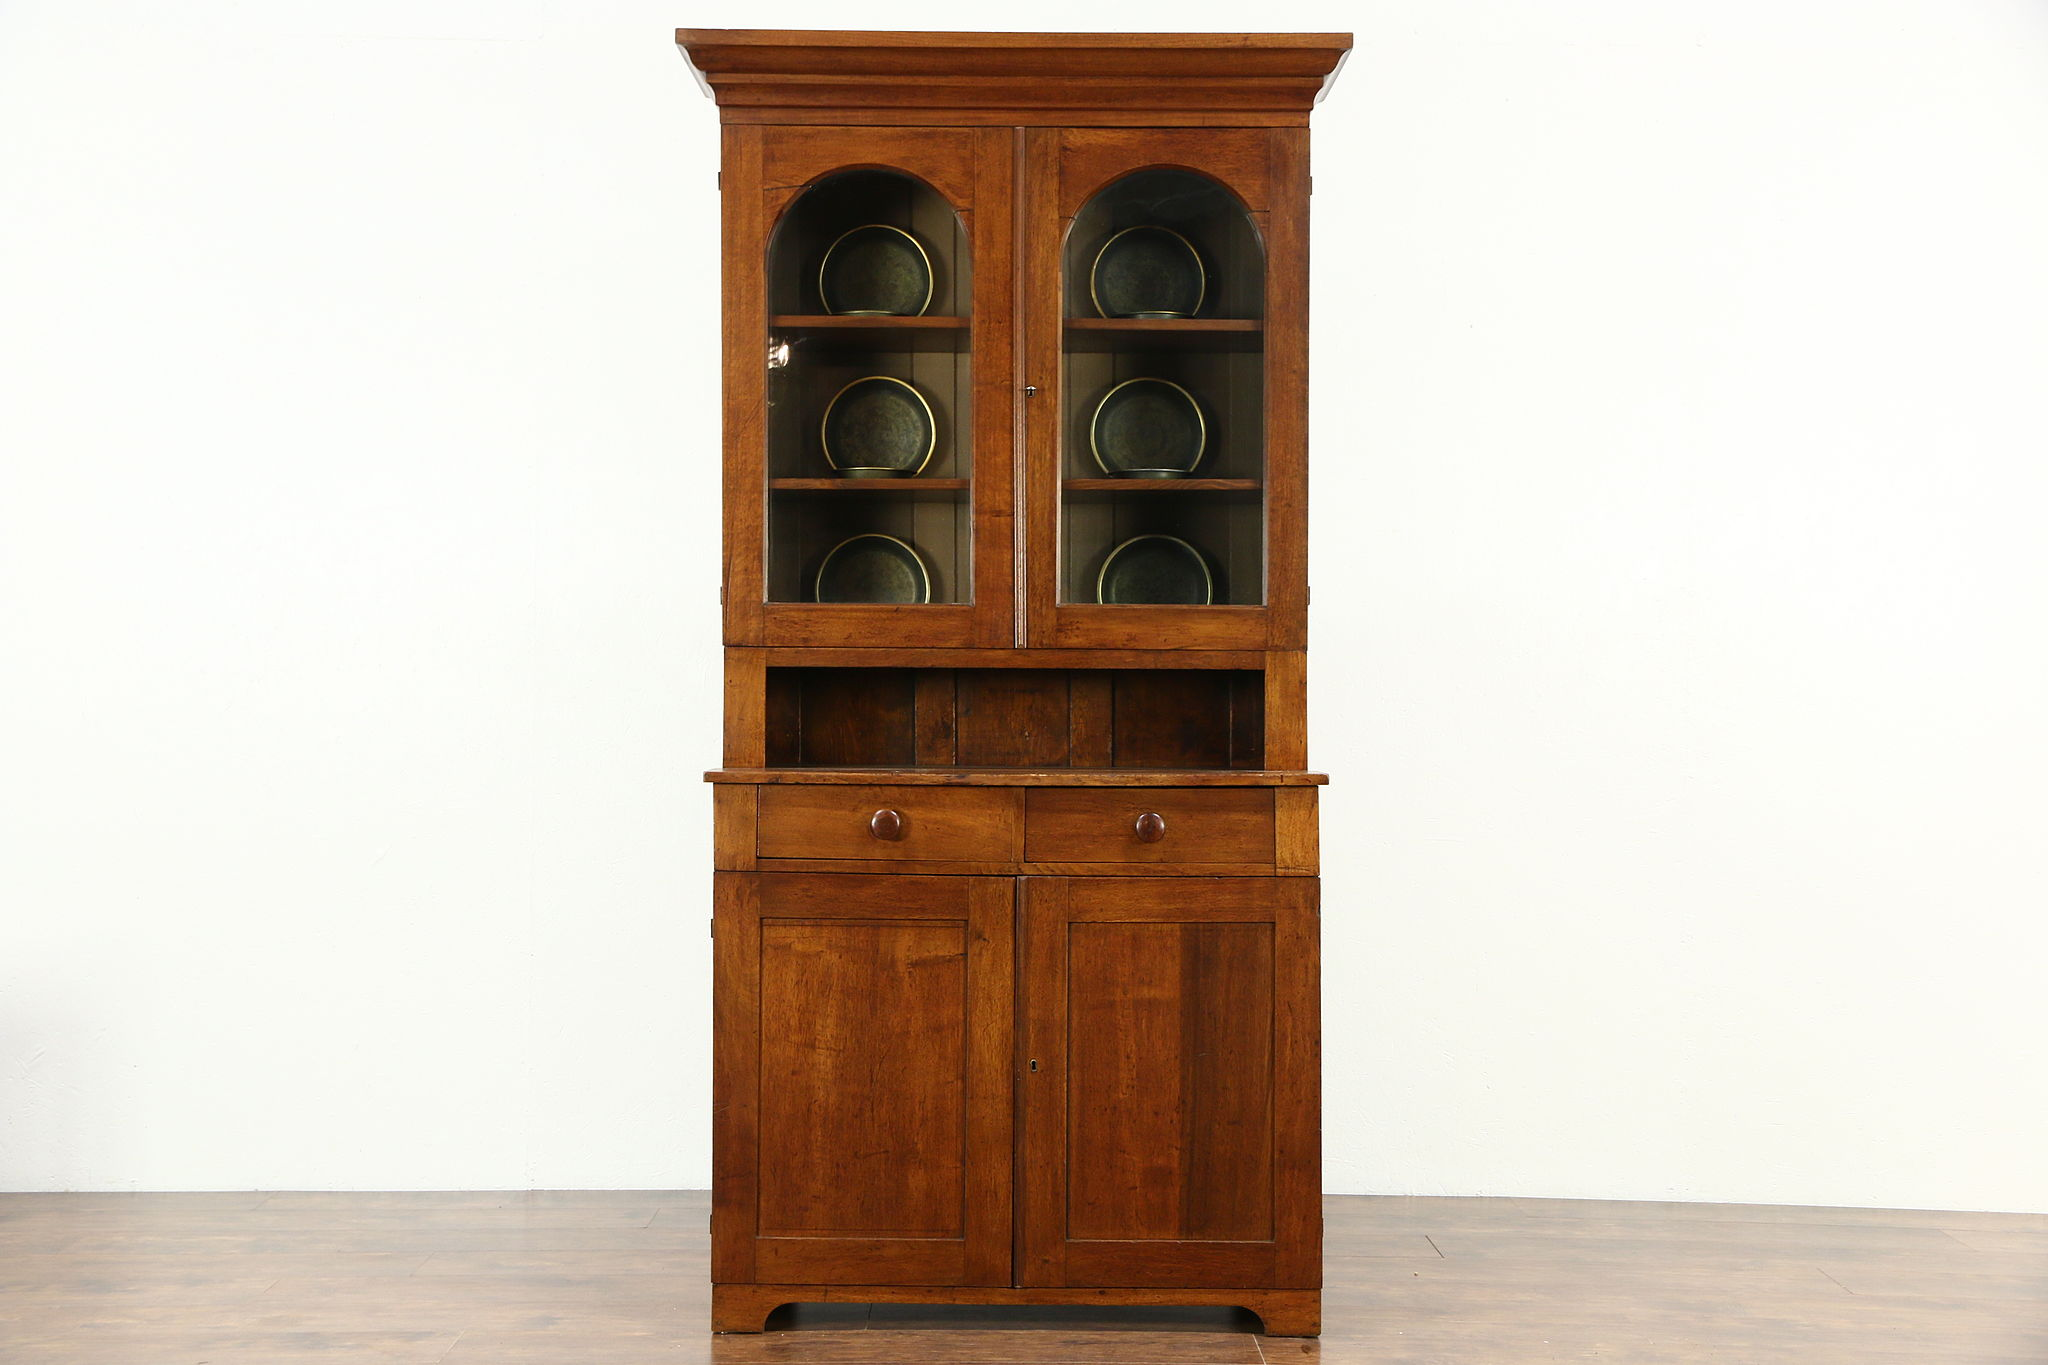 Sold pennsylvania walnut 1850s antique bookcase or cupboard wavy pennsylvania walnut 1850s antique bookcase or cupboard wavy glass doors planetlyrics Image collections